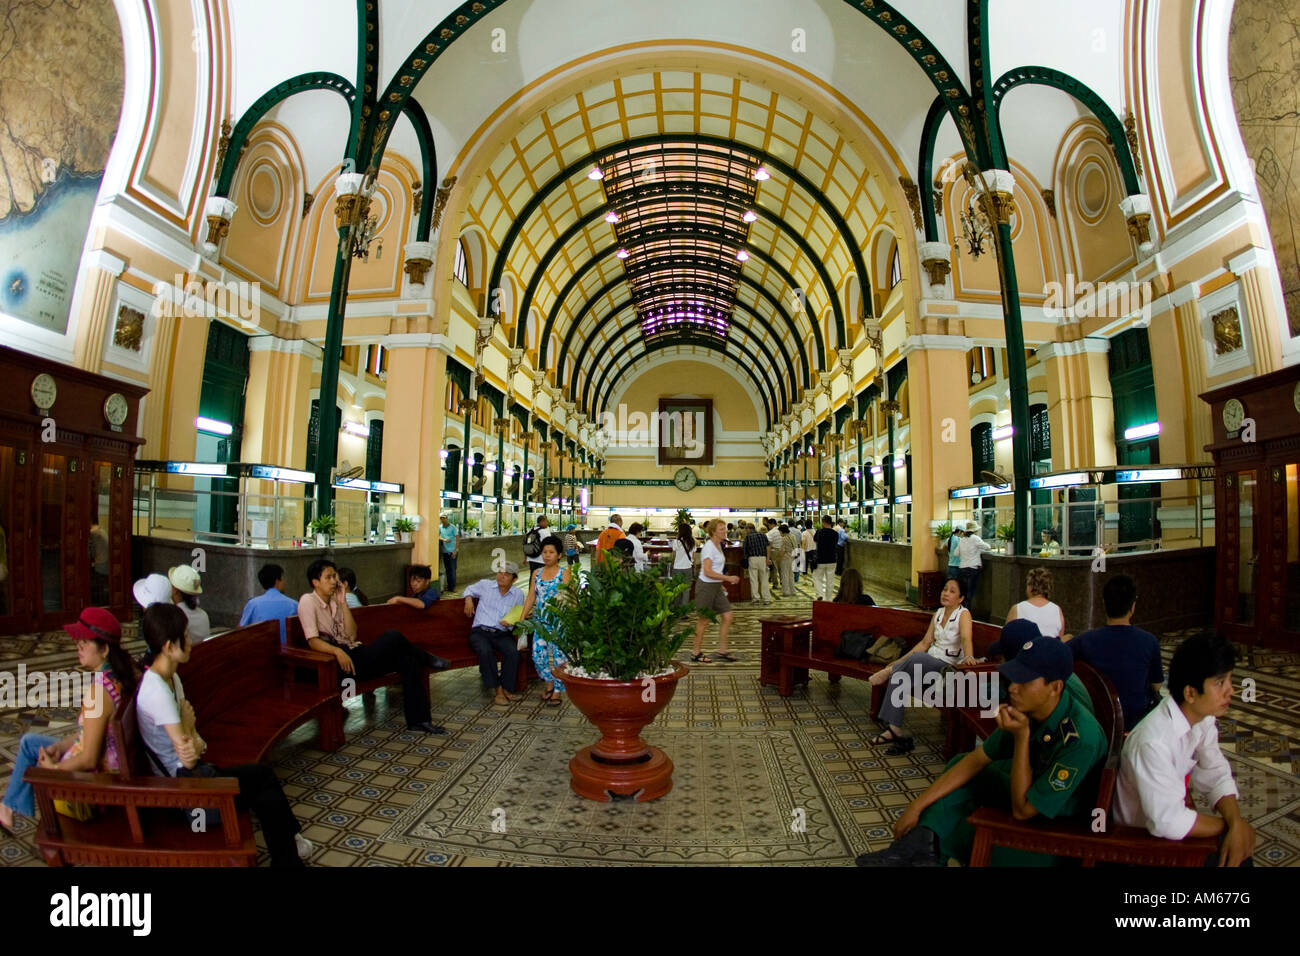 The main post office in Saigon, Vietnam, Asie - Stock Image